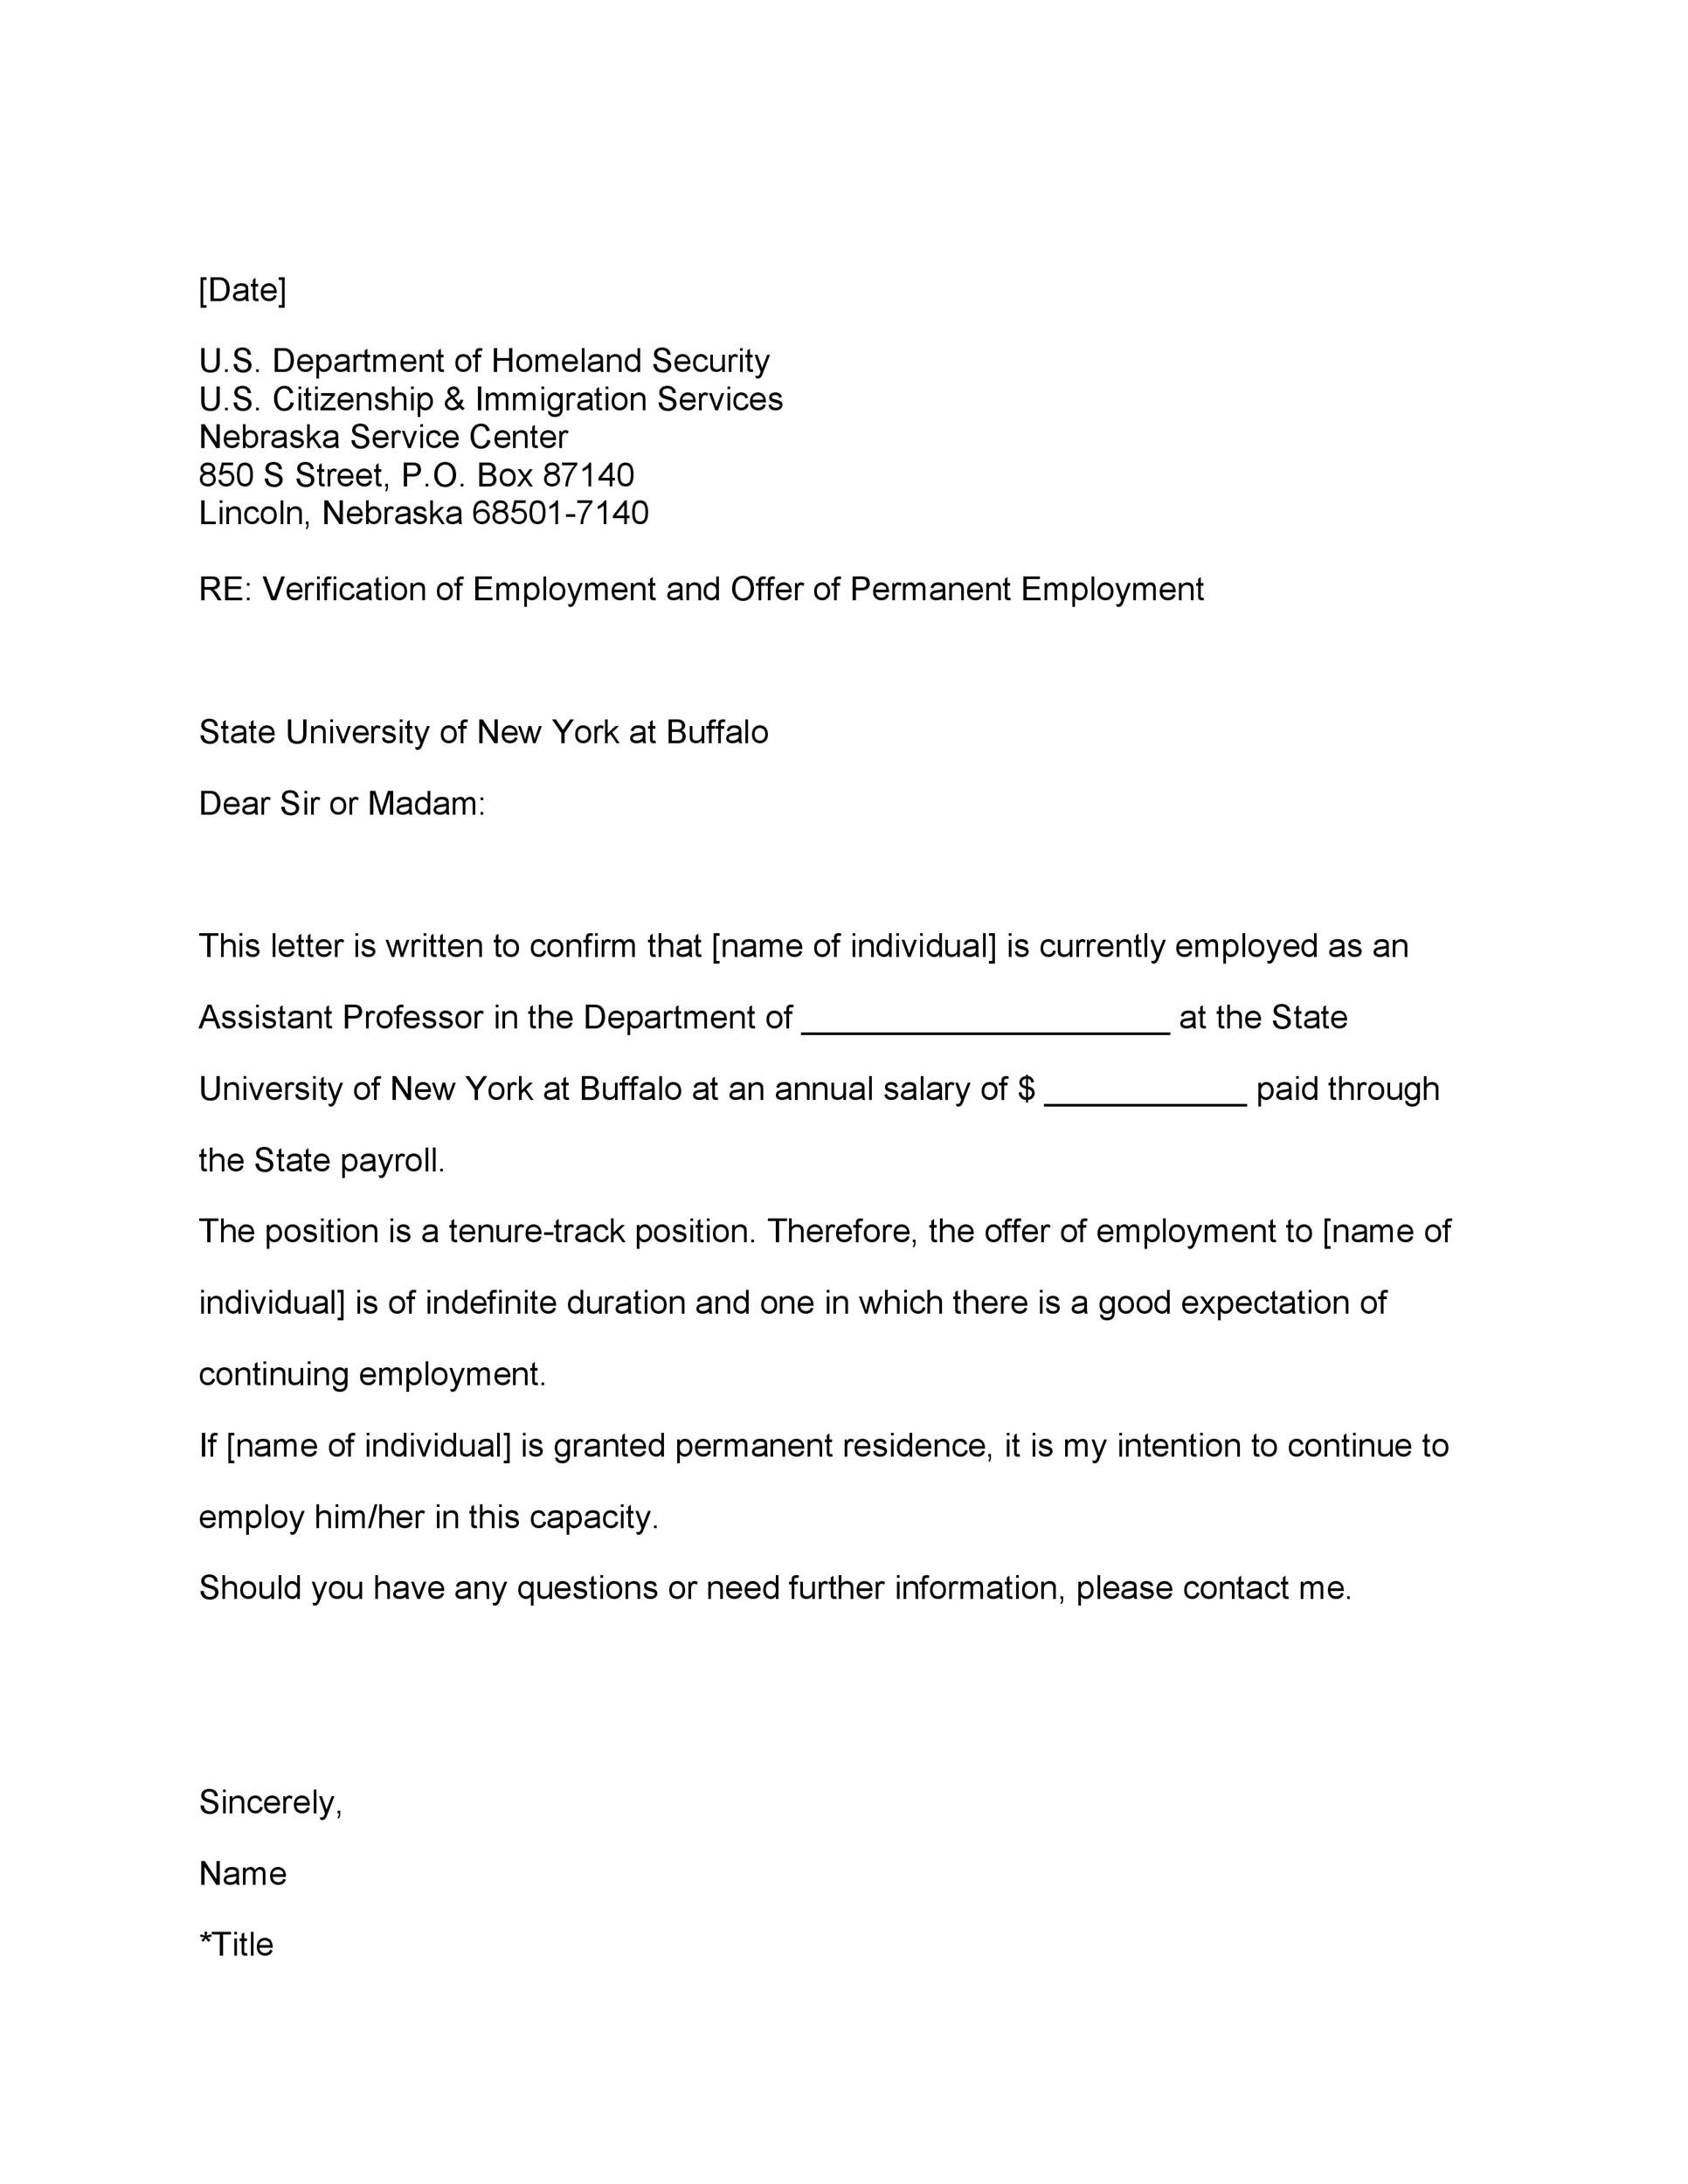 40 proof of employment letters verification forms samples printable proof of employment letter template 31 altavistaventures Gallery